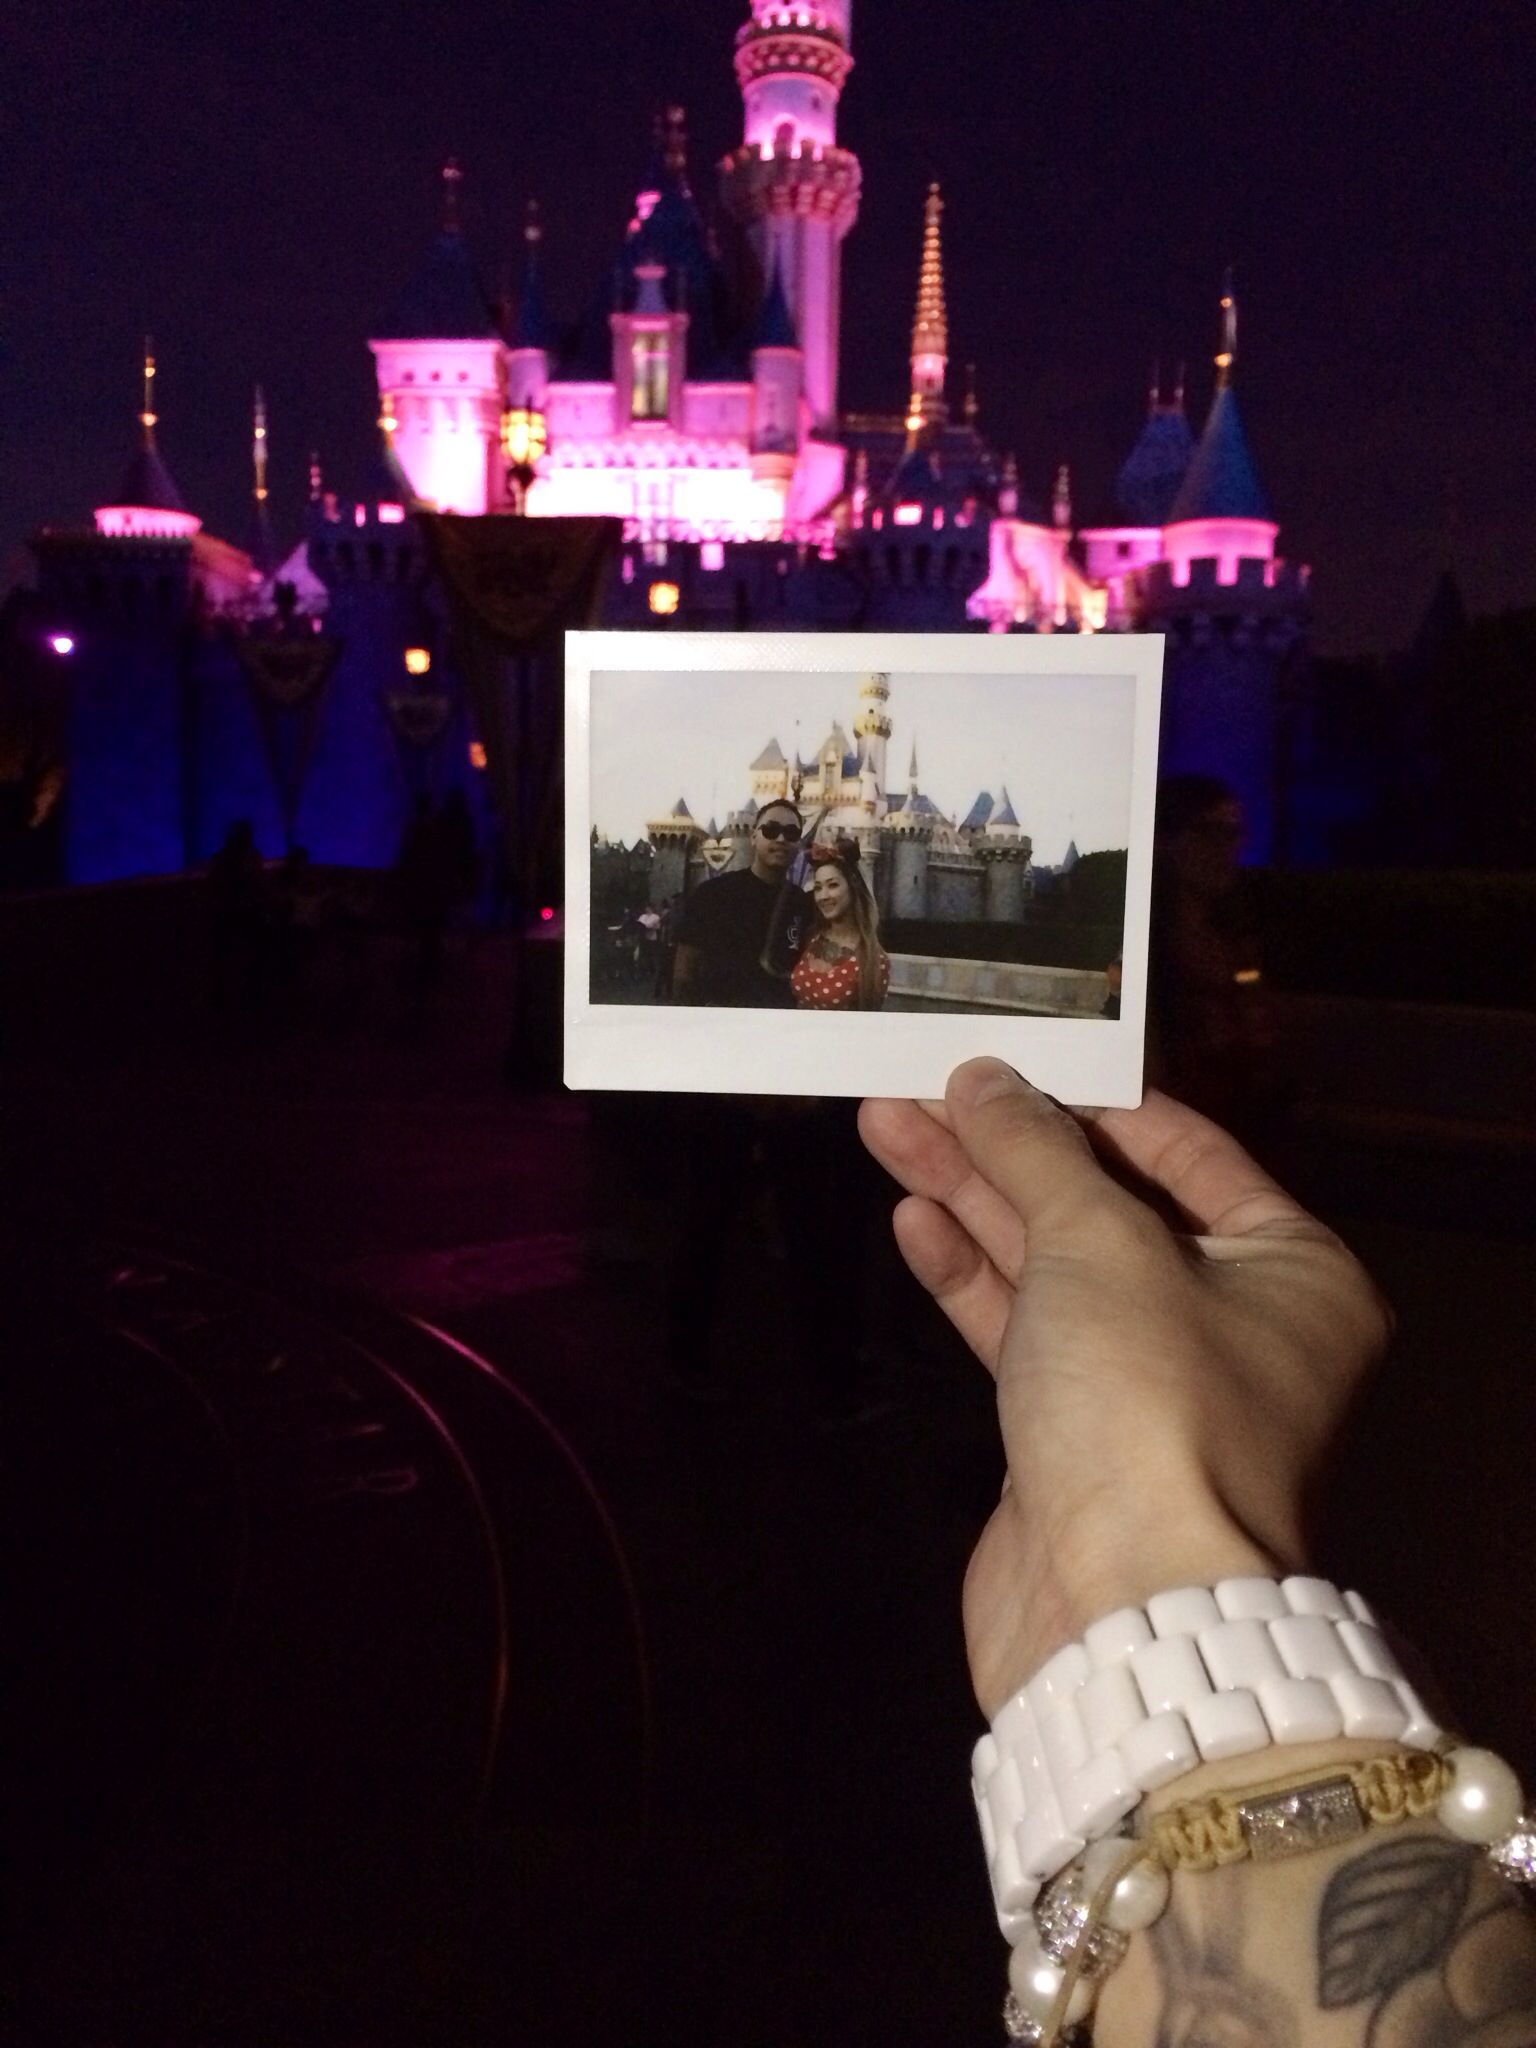 day and night time at disneyland with my boyfriend. #polaroid